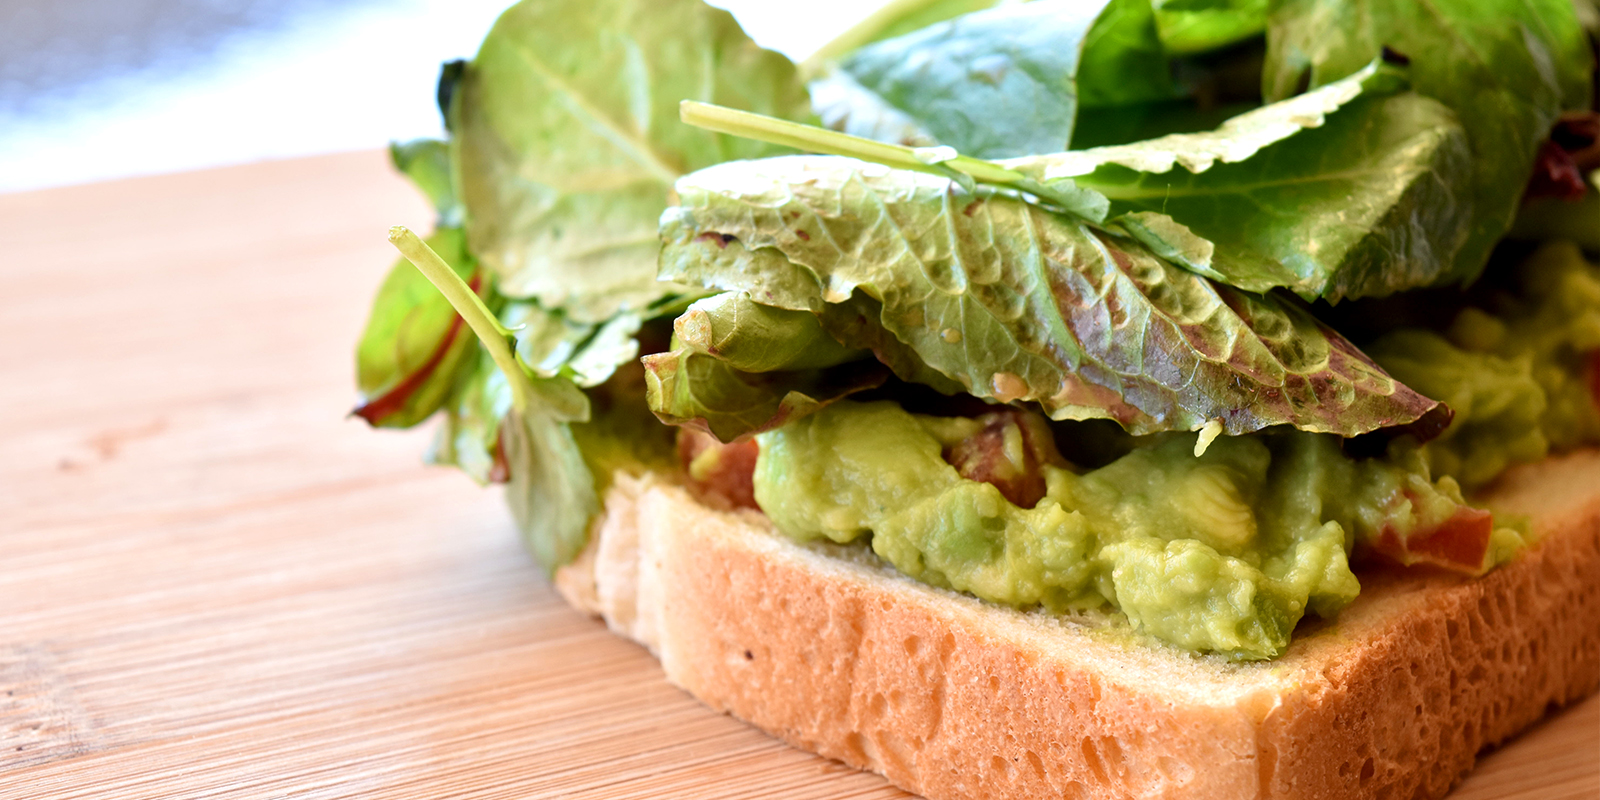 Avocado Toast - Avocado, minced Tomato, Topped with Mixed Greens tossed in Balsamic Vinaigrette$7.50